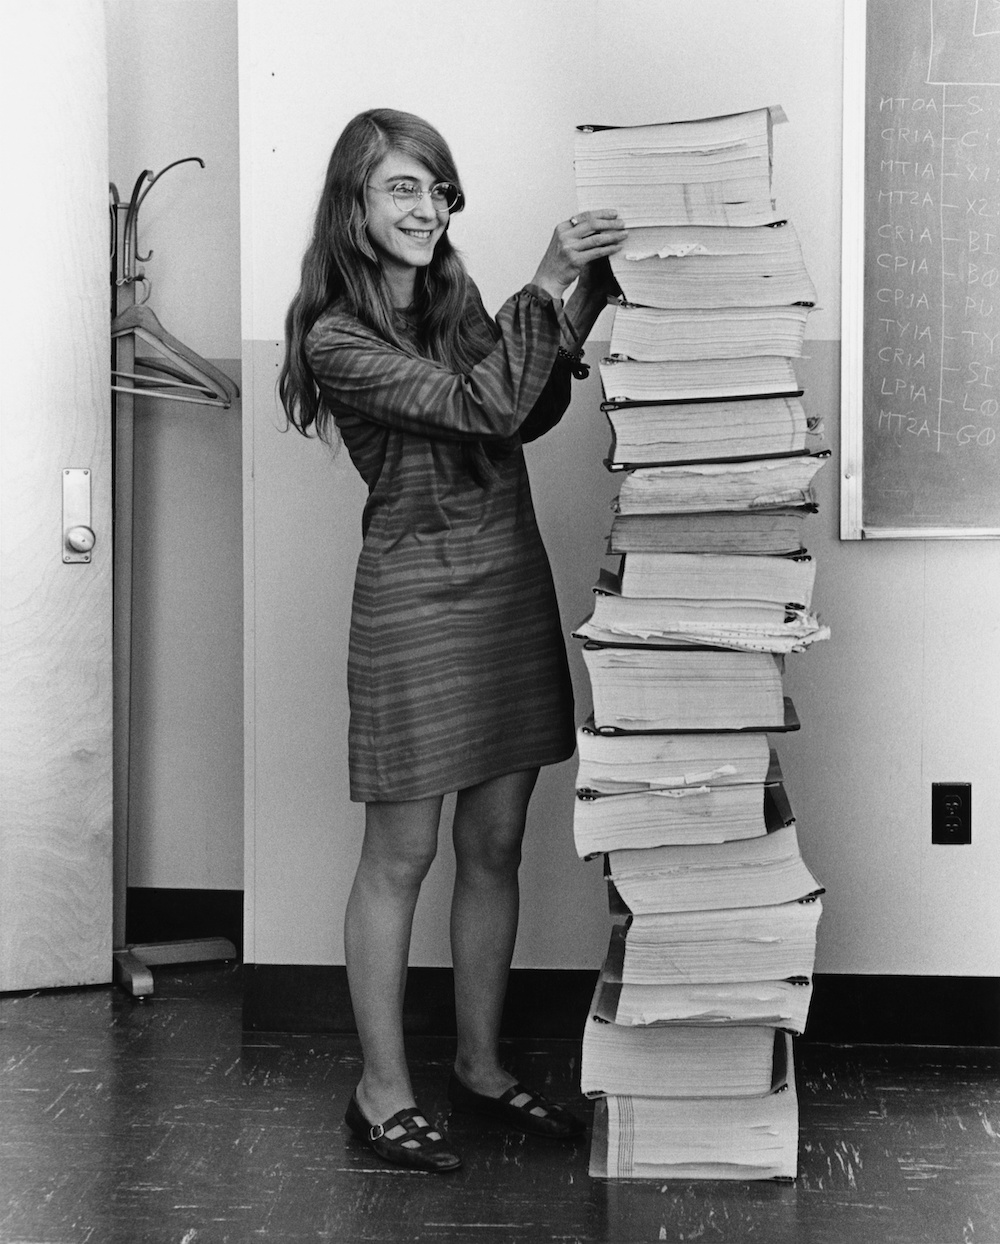 A photograph of Margaret Hamilton and code that helped accomplish the Apollo 11 lunar landing.